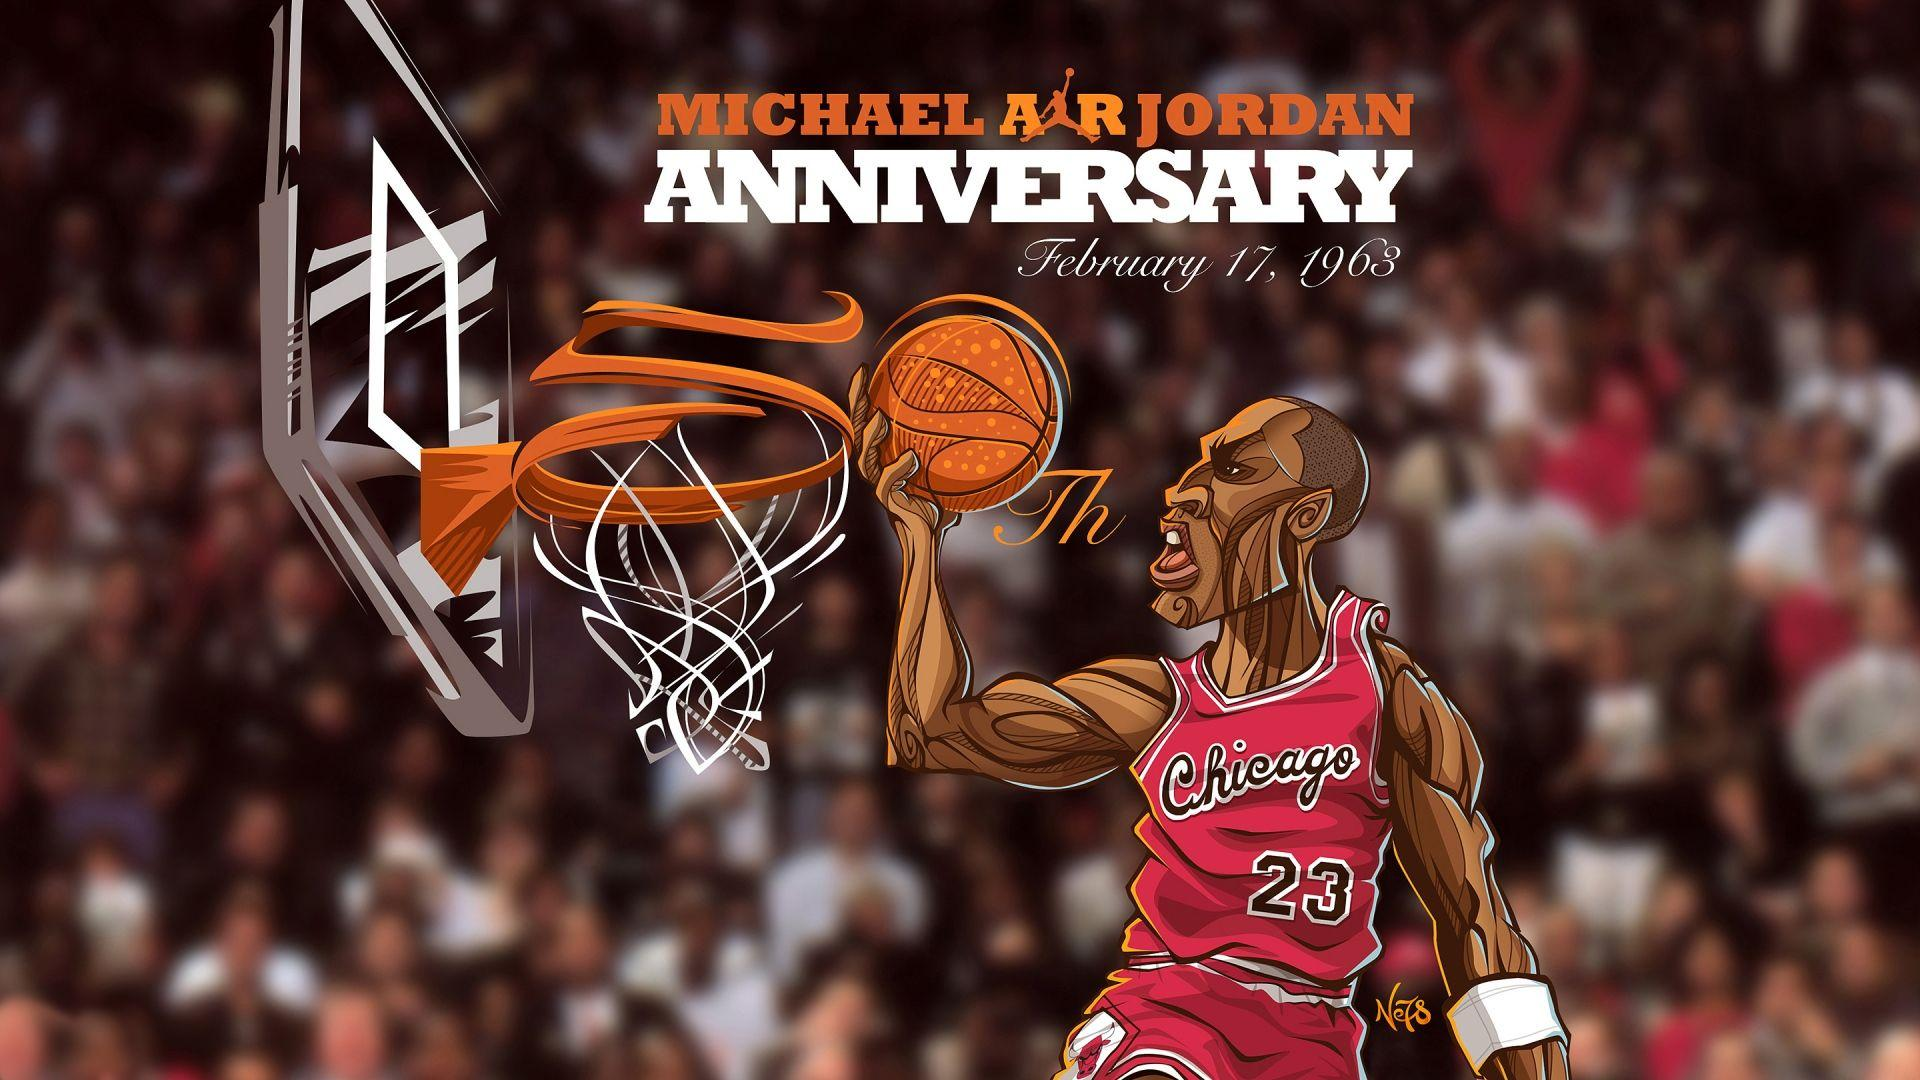 Michael Jordan Jersey Wallpaper: Michael Jordan Bulls Jersey Wallpapers